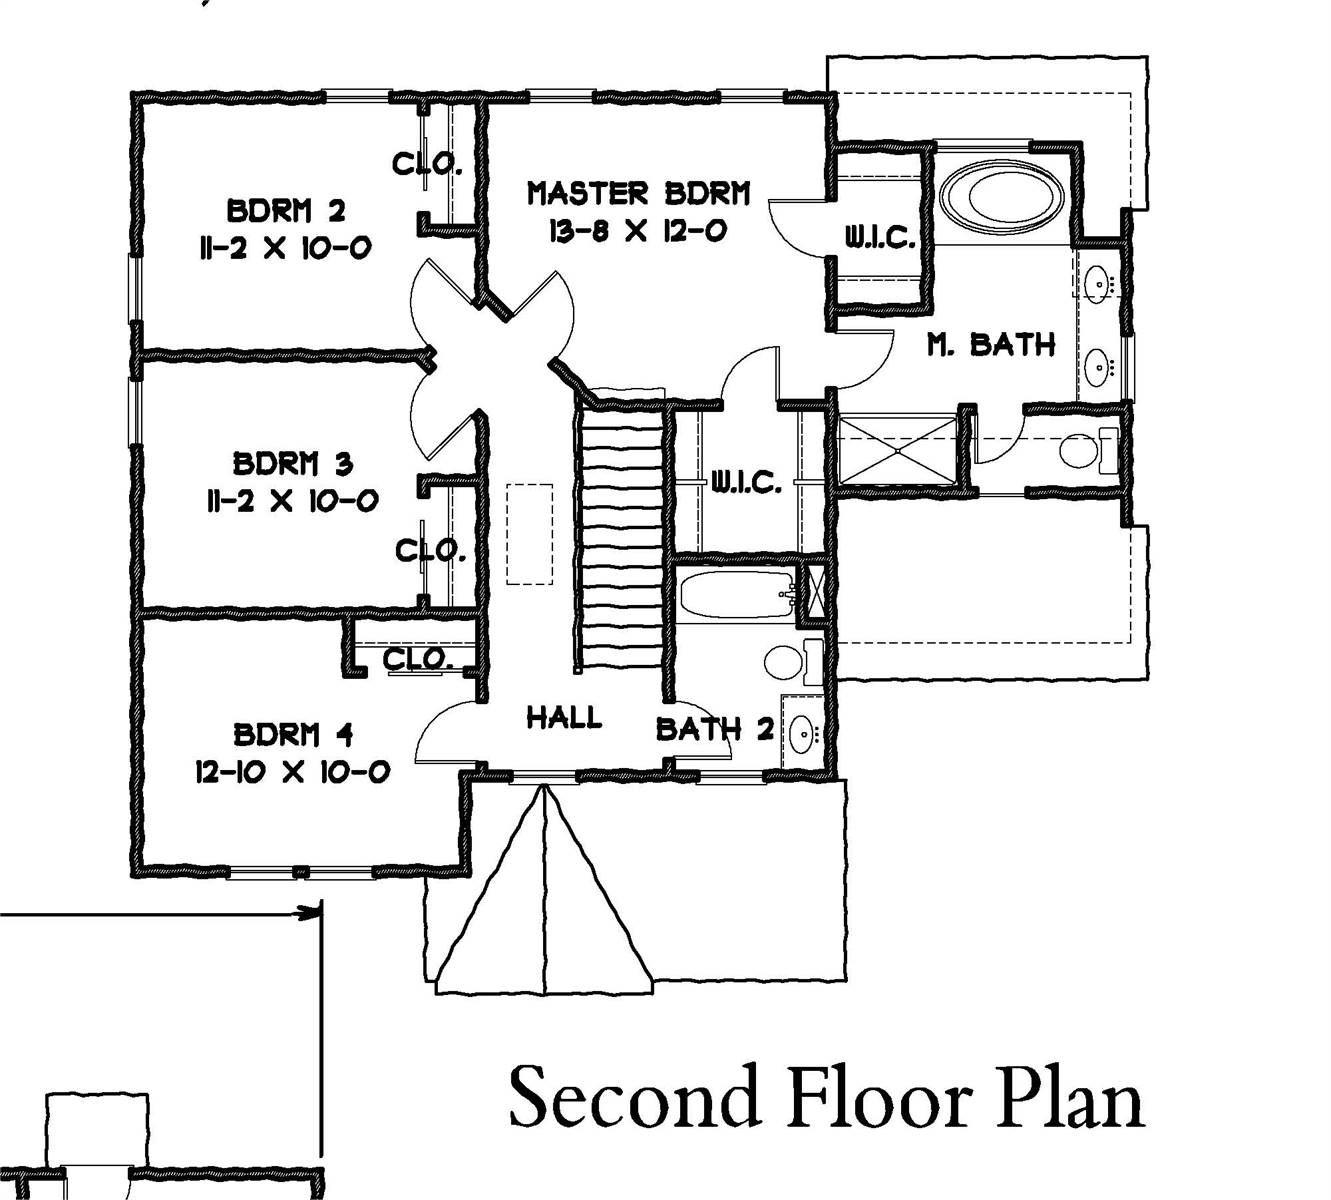 2nd Floor Plan image of Carpenter IV House Plan